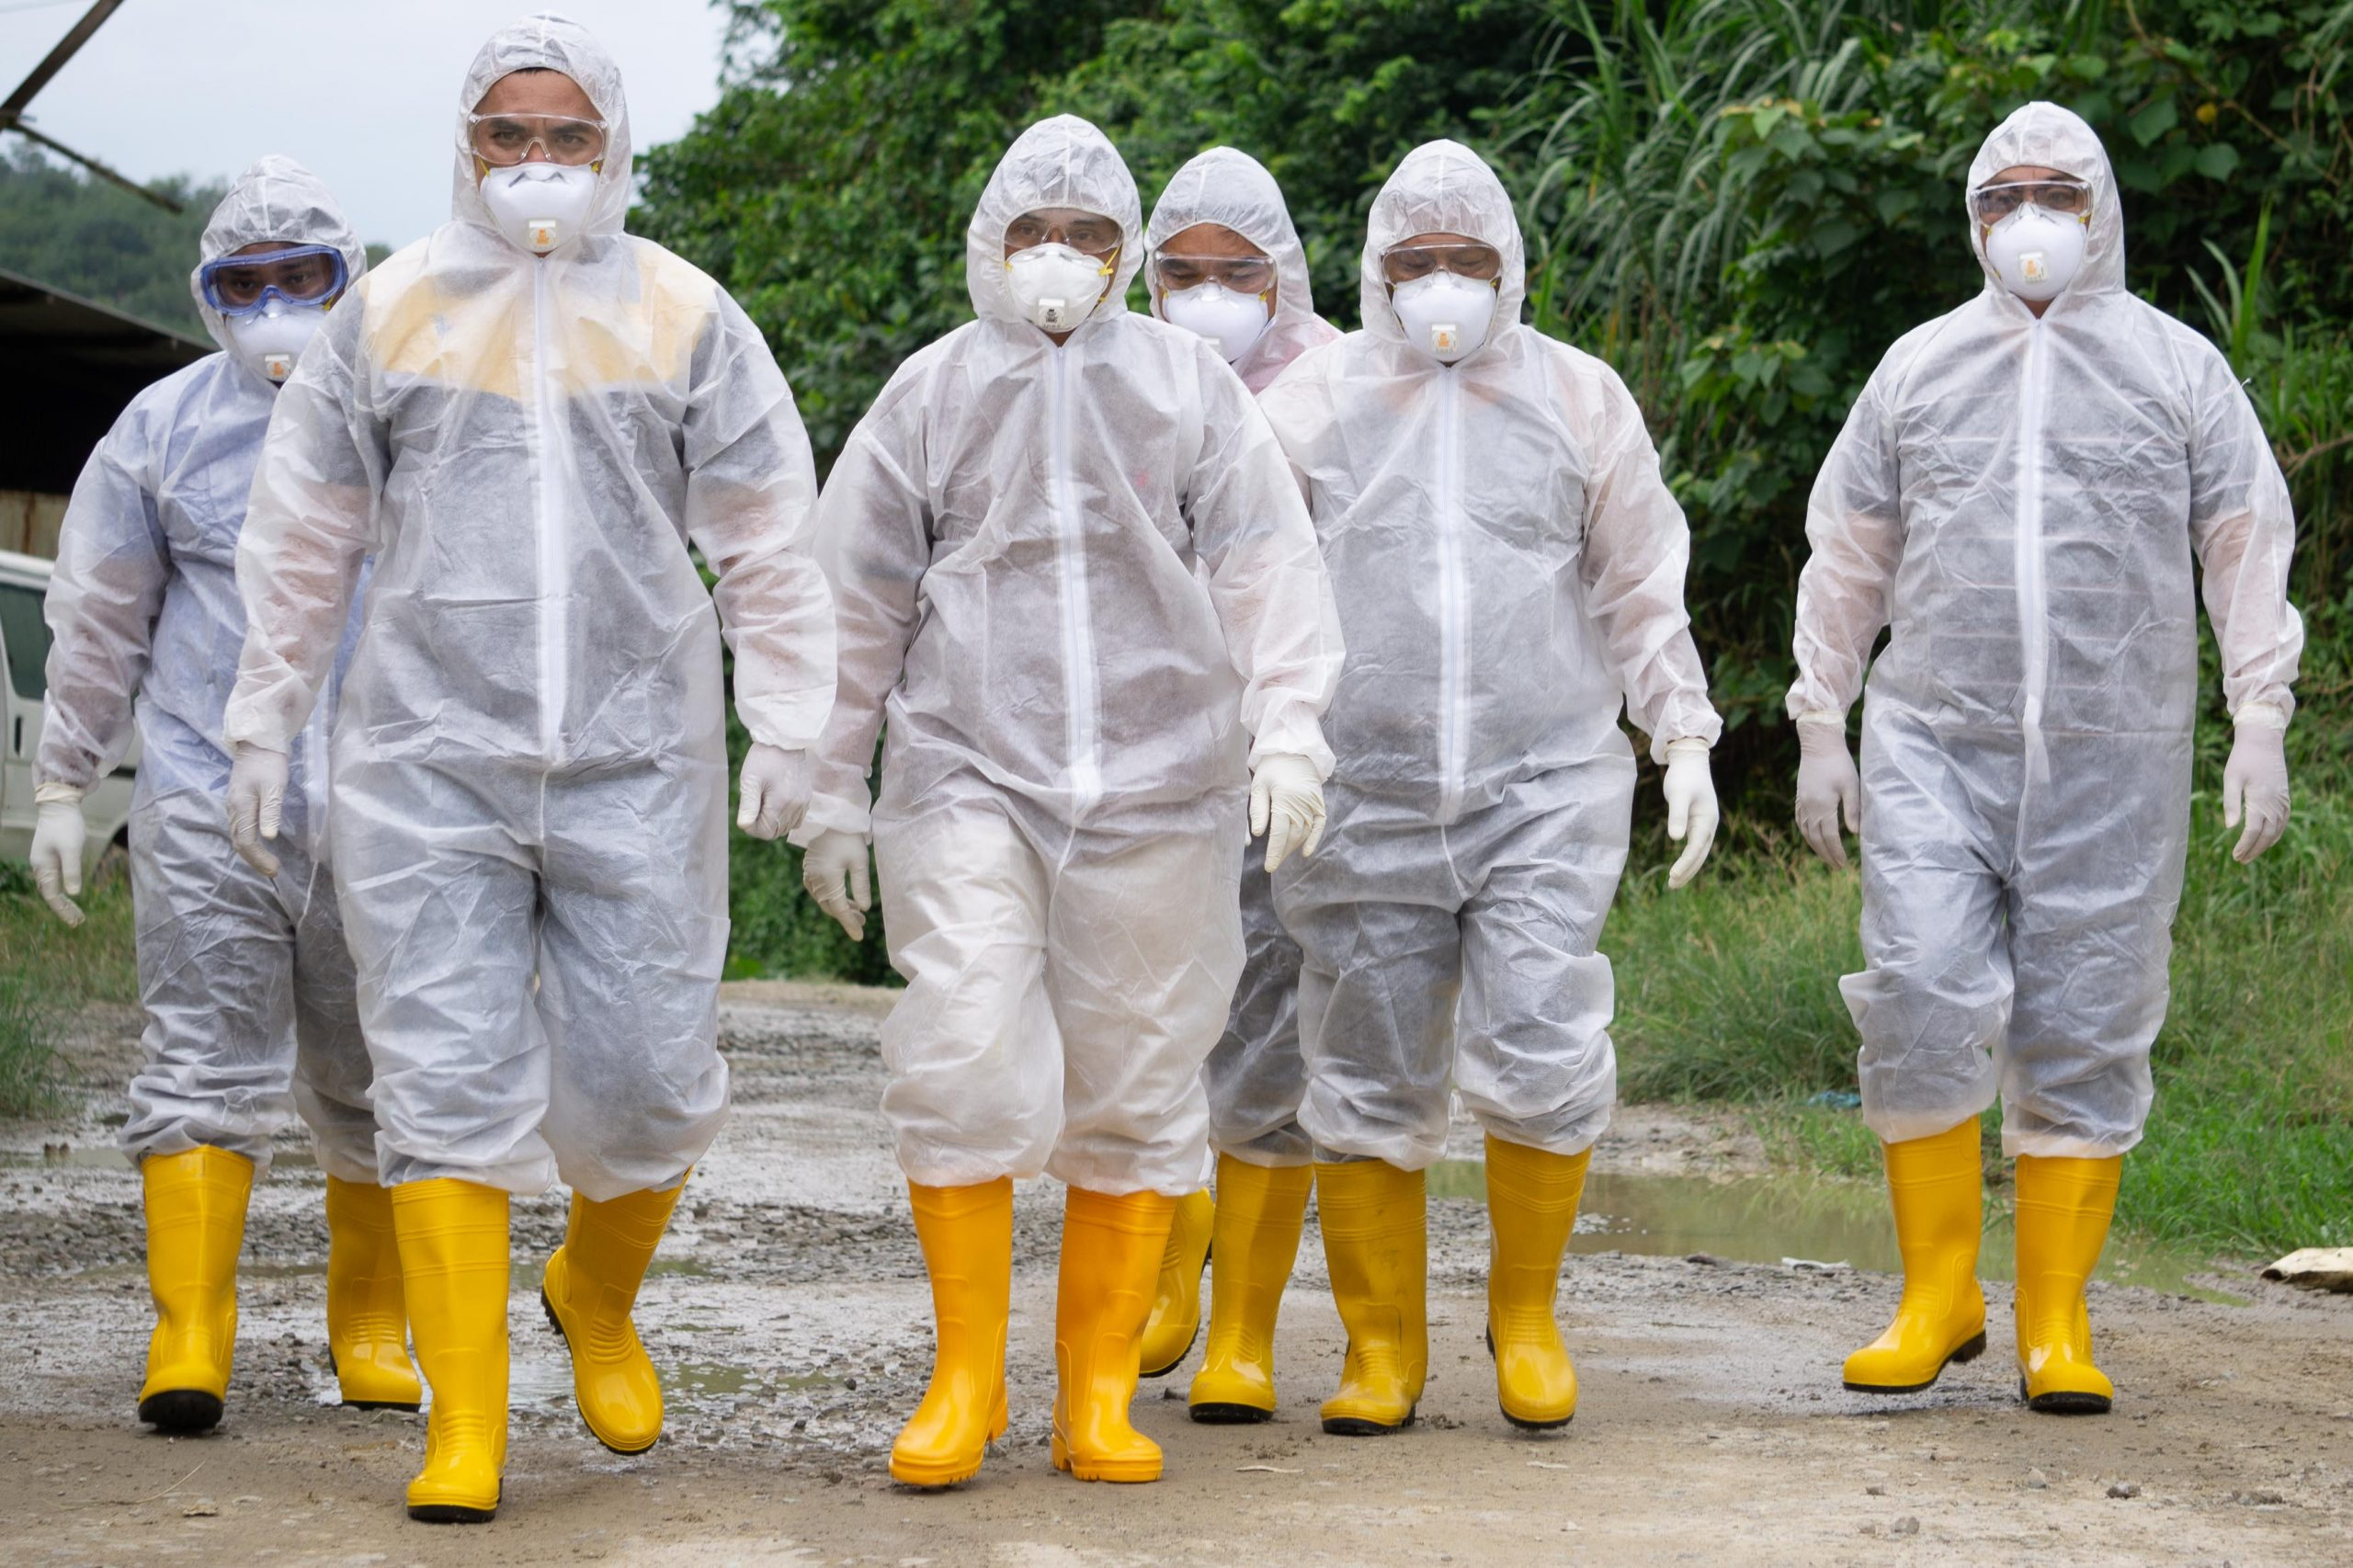 Vertical explainer photo 1 - Veterinary workers wearing personal protection equipment (PPE) during avian influenza (bird flu) checking on chicken barn in Malaysia.